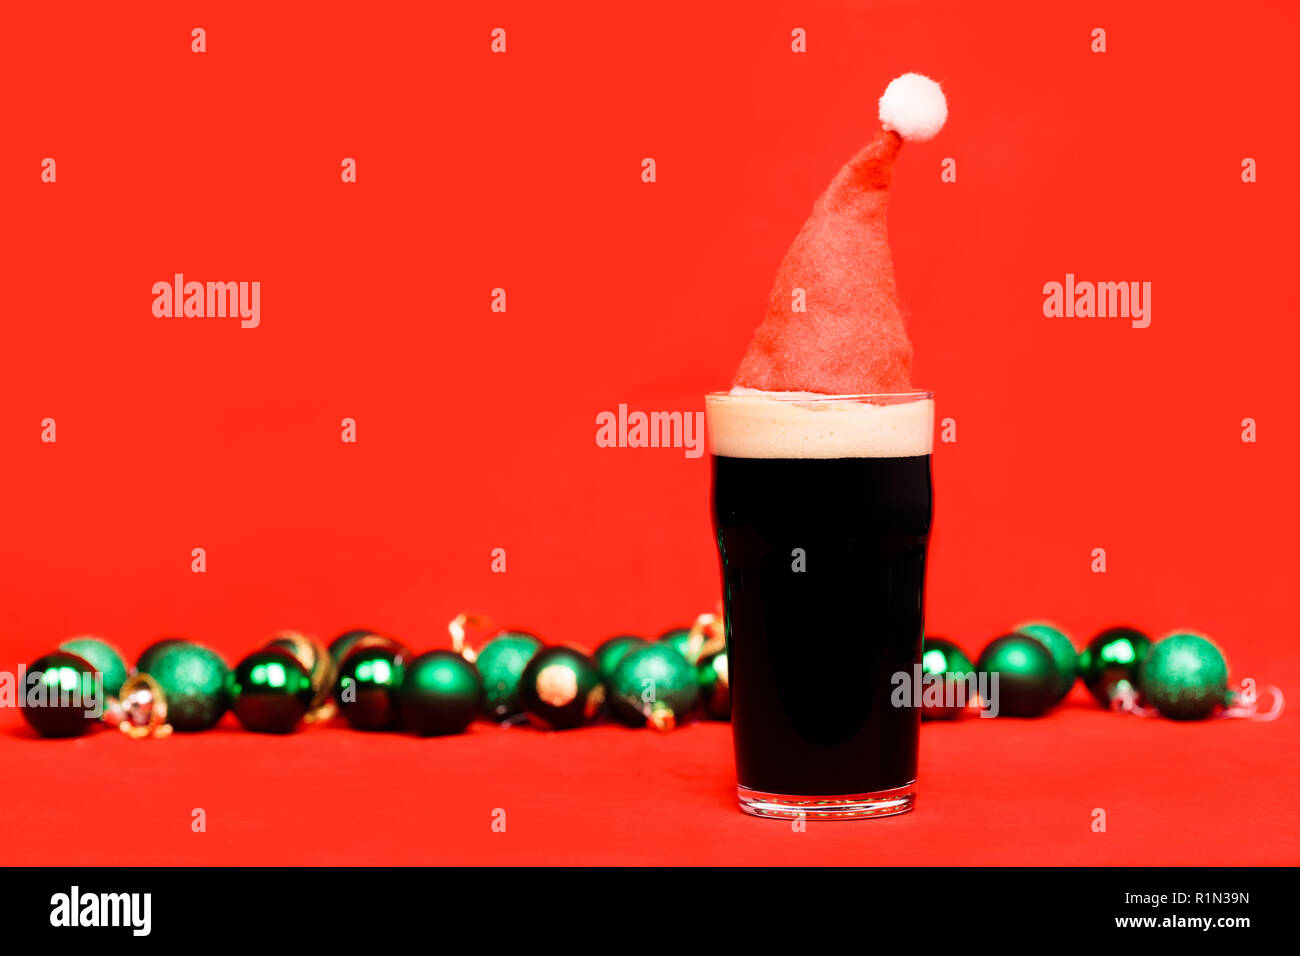 Rote Christbaumkugeln Glas.Nonik Pint Glas Dunkles Bier Oder Stout Ale Mit Rote